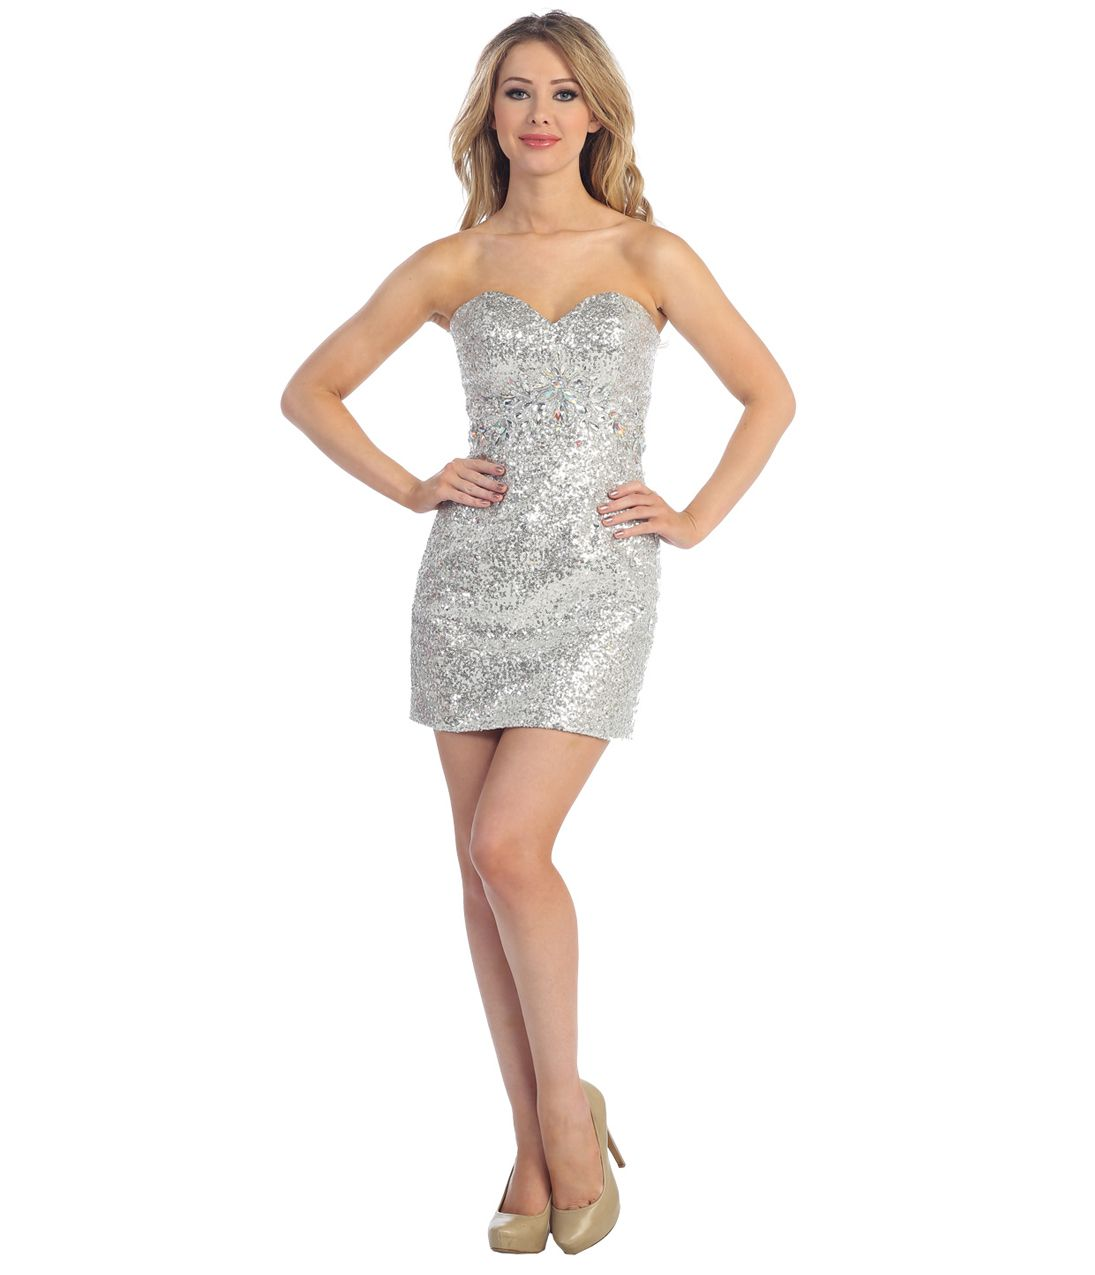 14f515ebb2eb0 2013 Prom Dresses - Silver Sequin Fitted Short Prom Dress - Unique Vintage  - Prom dresses